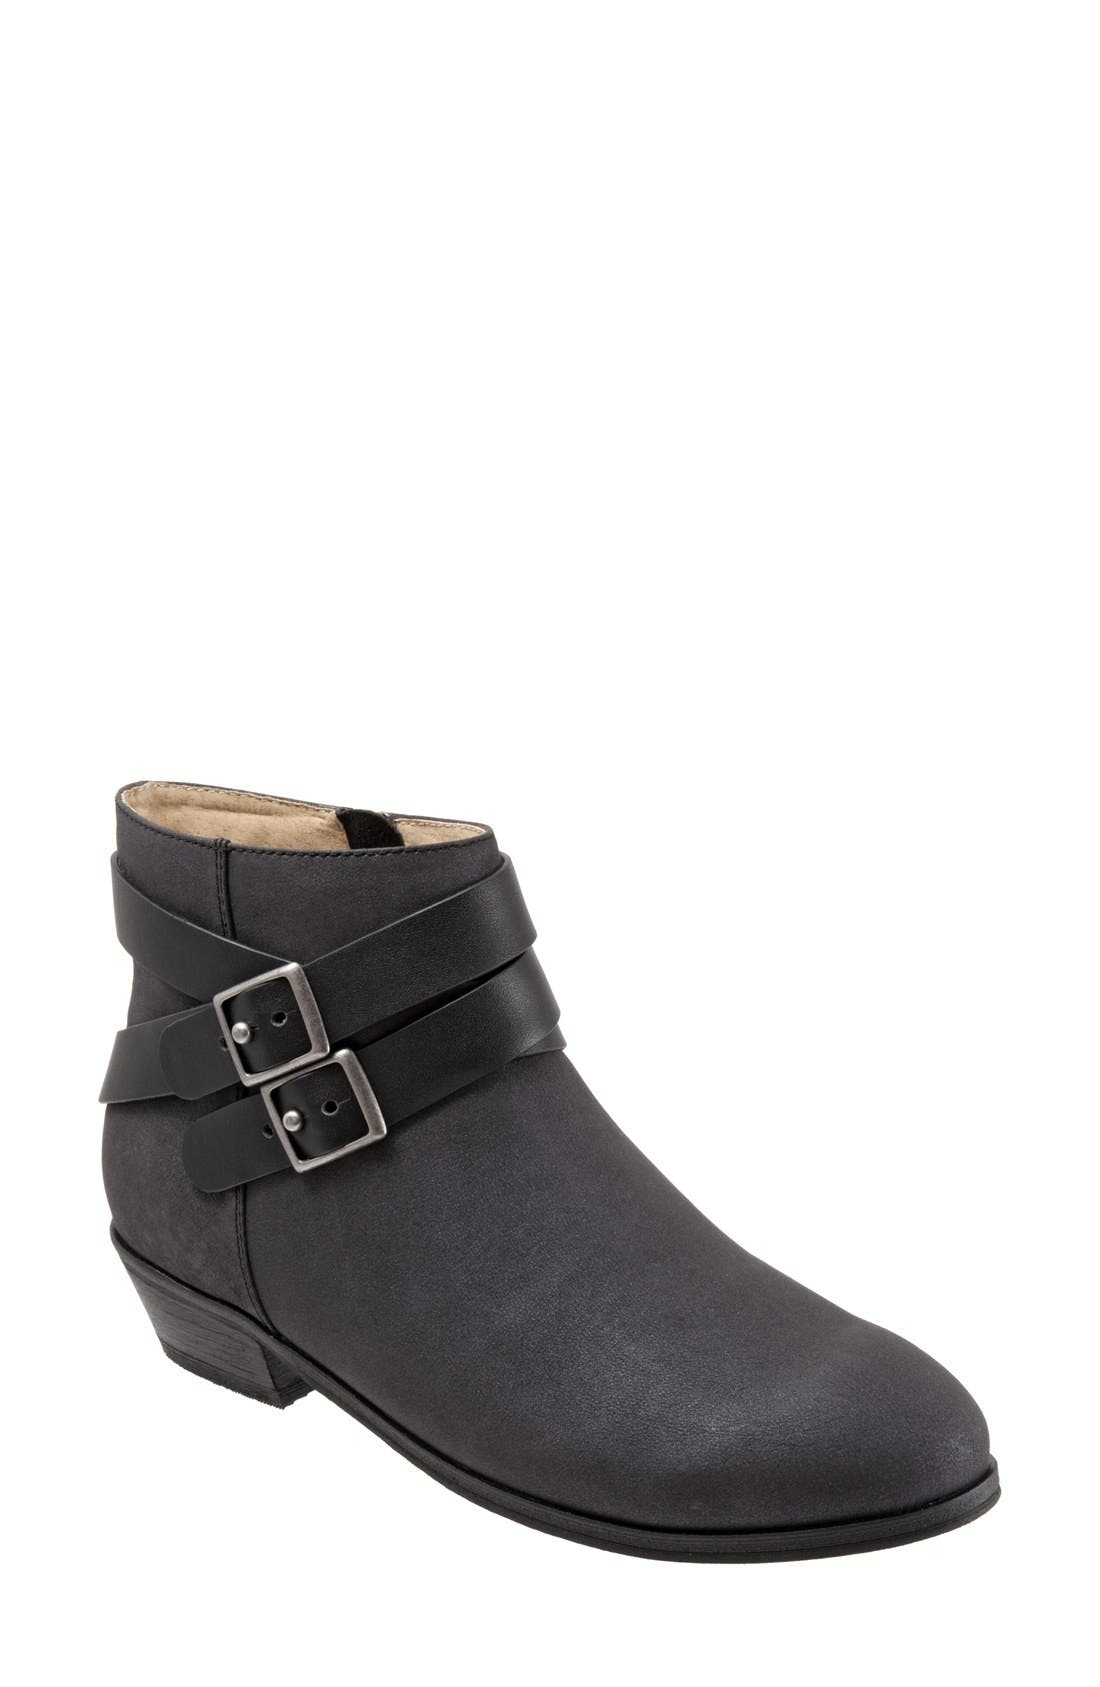 Alternate Image 1 Selected - SoftWalk® 'Rancho' Bootie(Women)